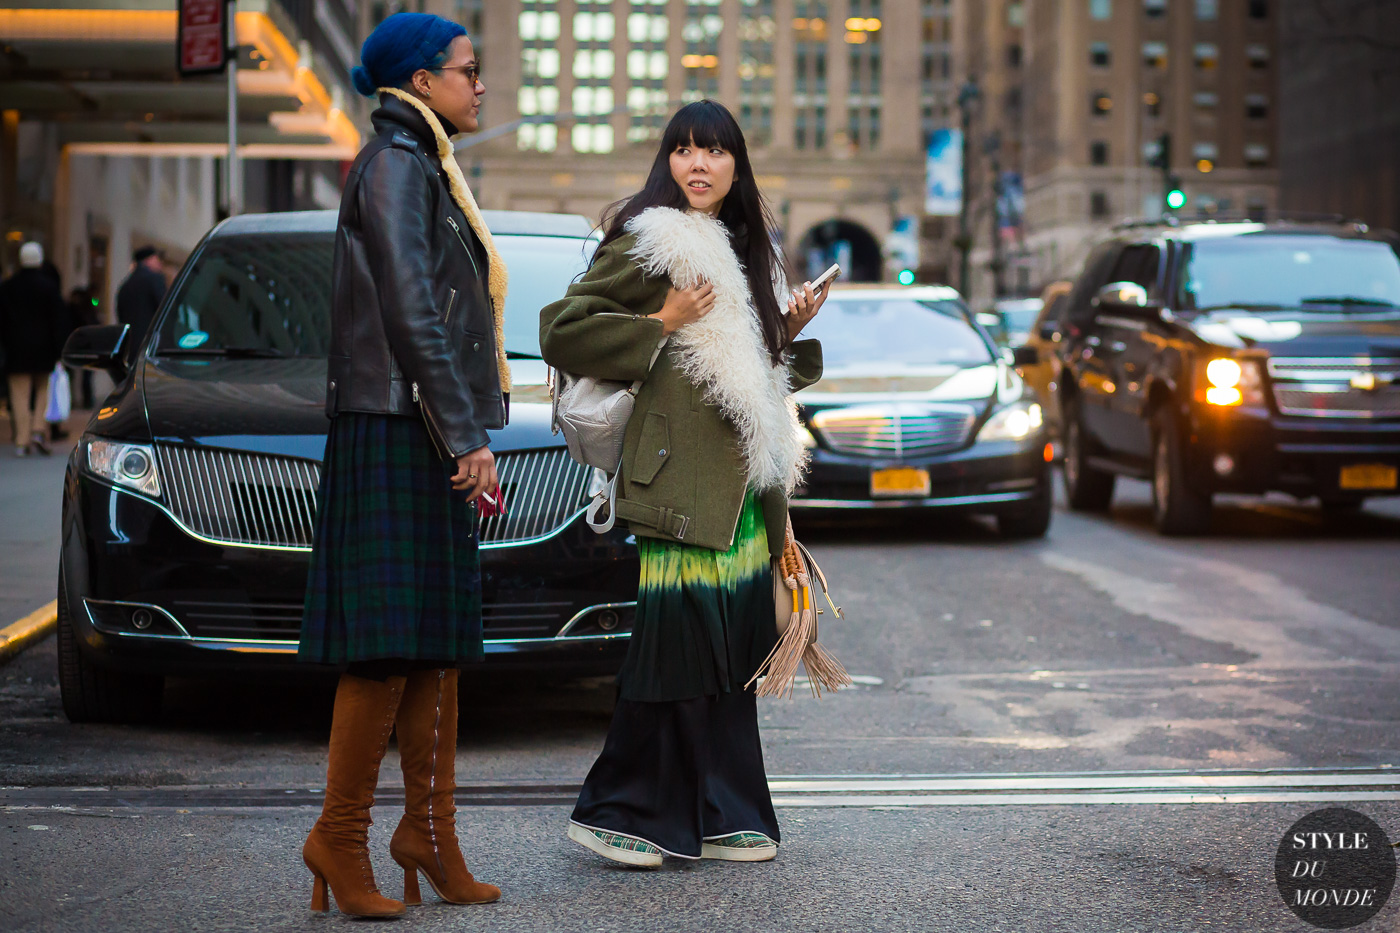 nell-kalonji-and-susie-lau-style-bubble-by-styledumonde-street-style-fashion-photography